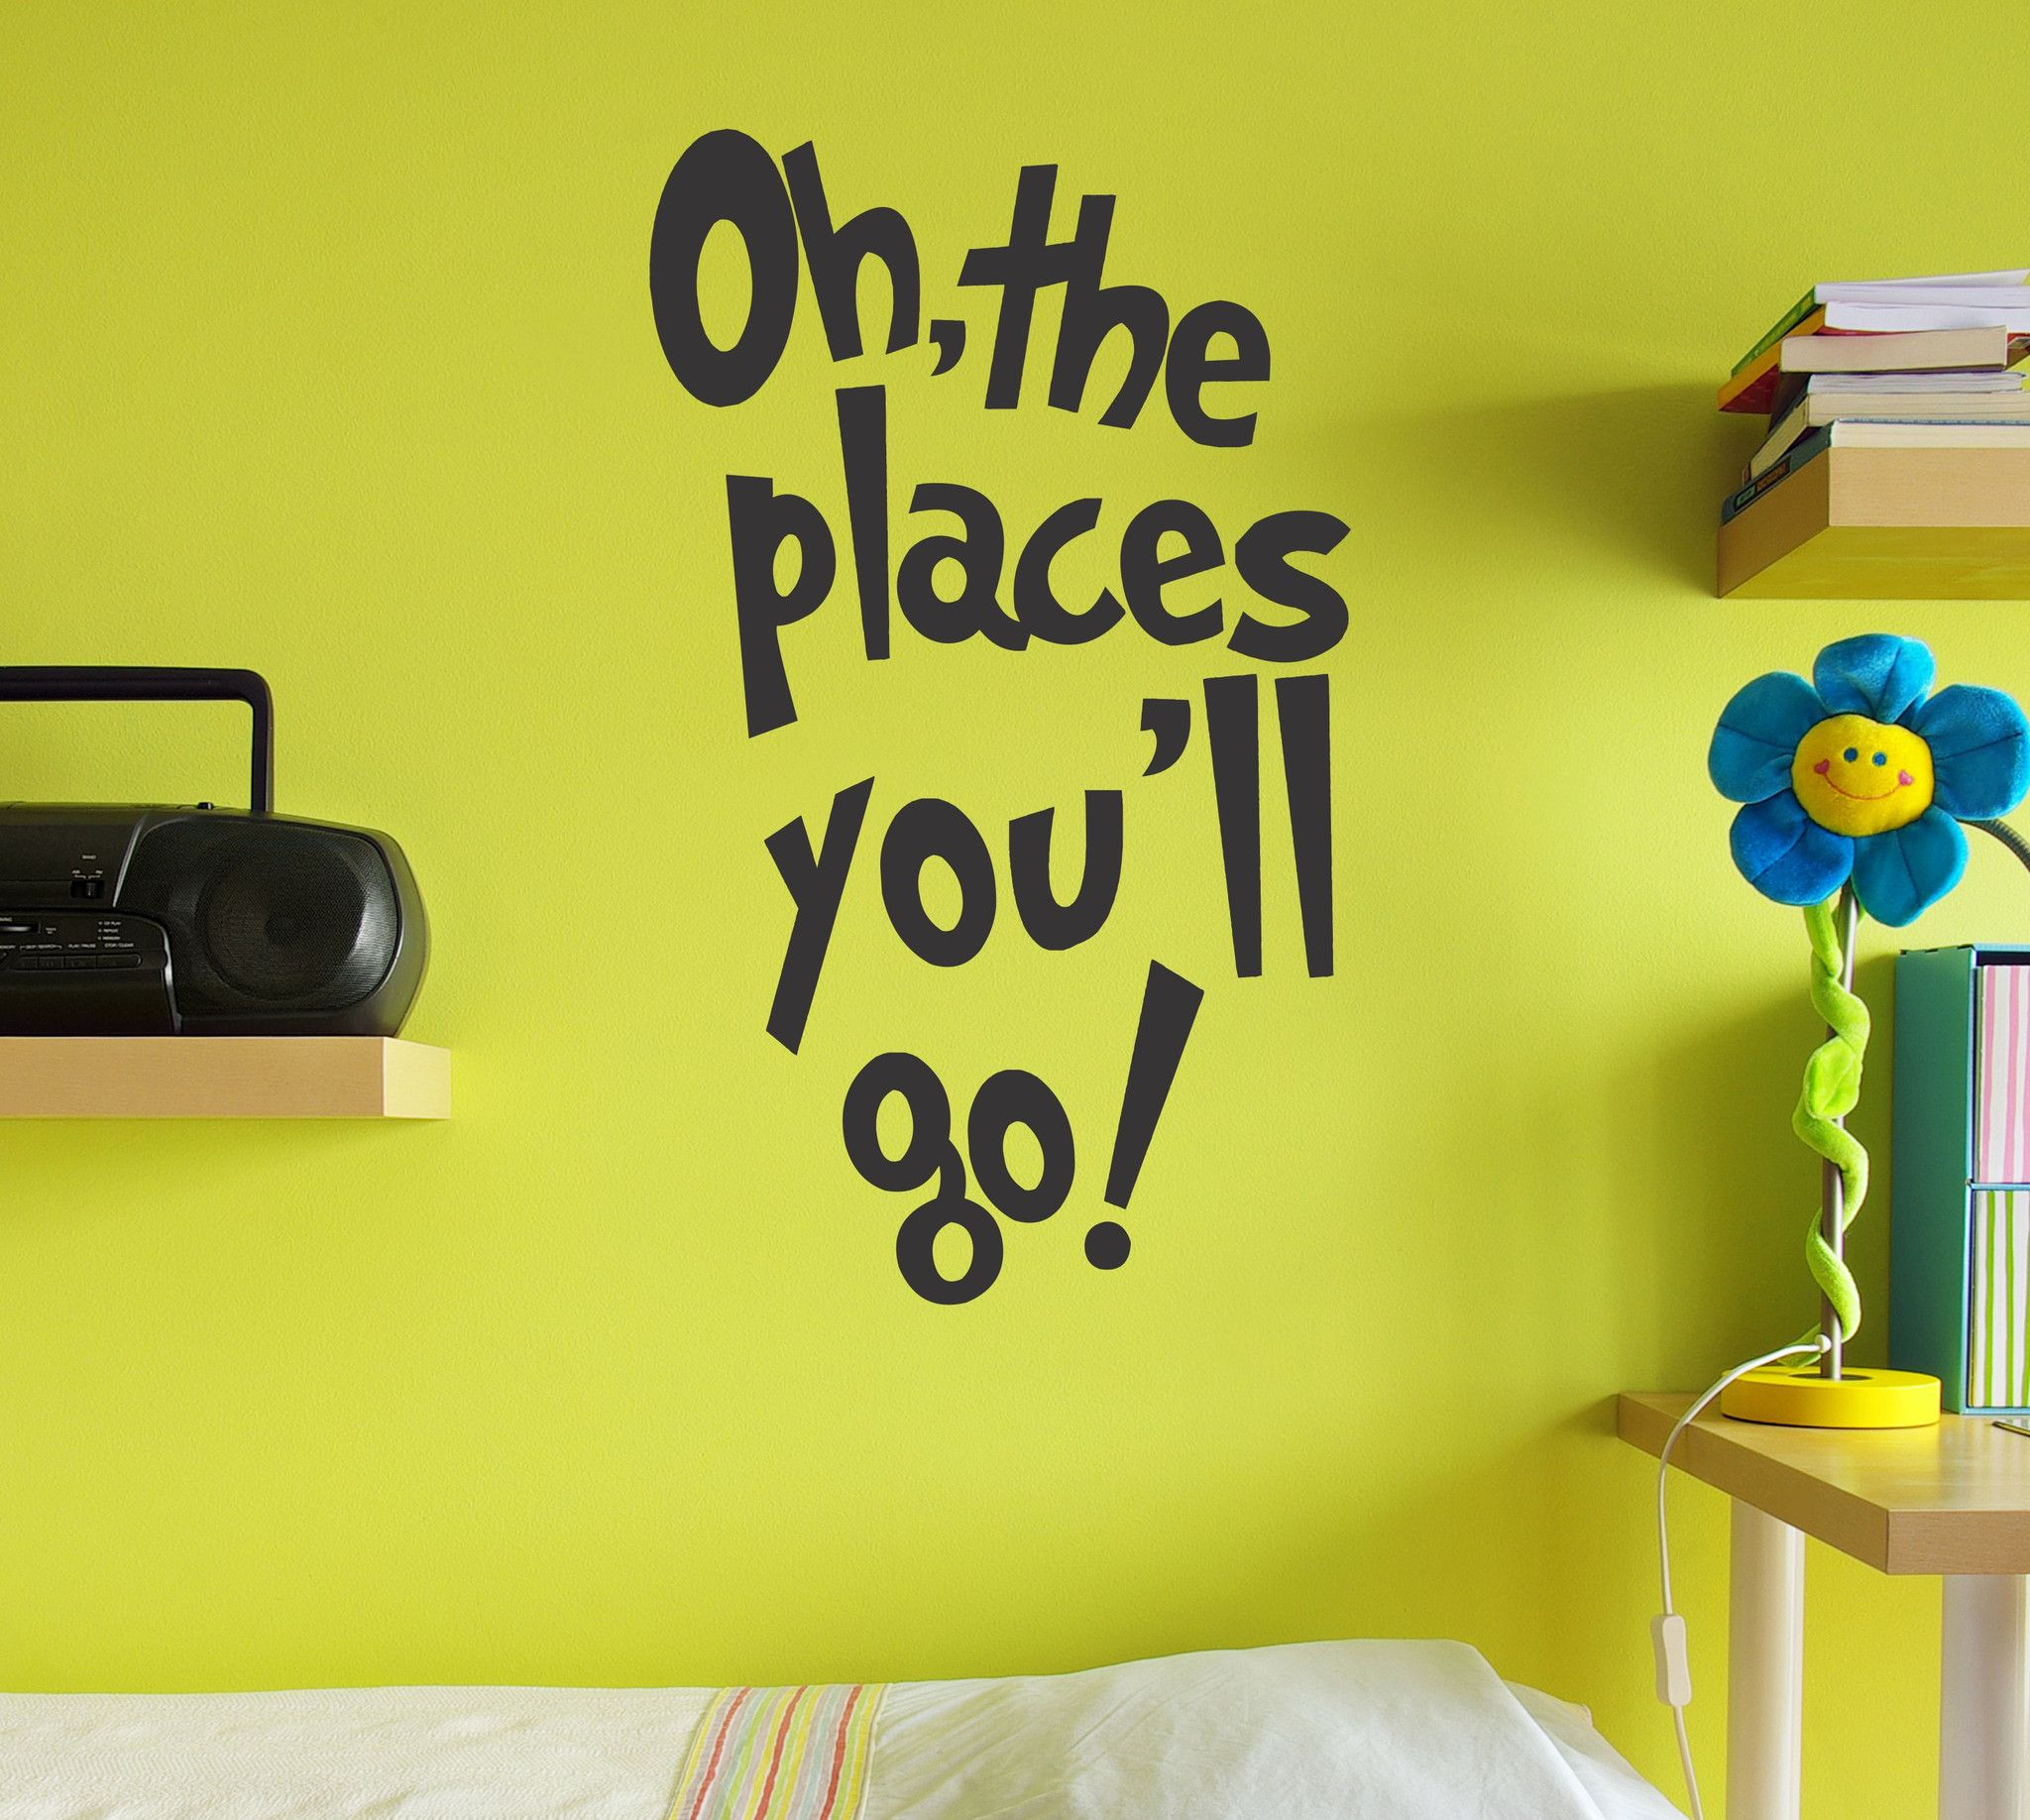 Oh, the Places You\'ll Go Dr Seuss wall decal | Dr seuss wall decals ...